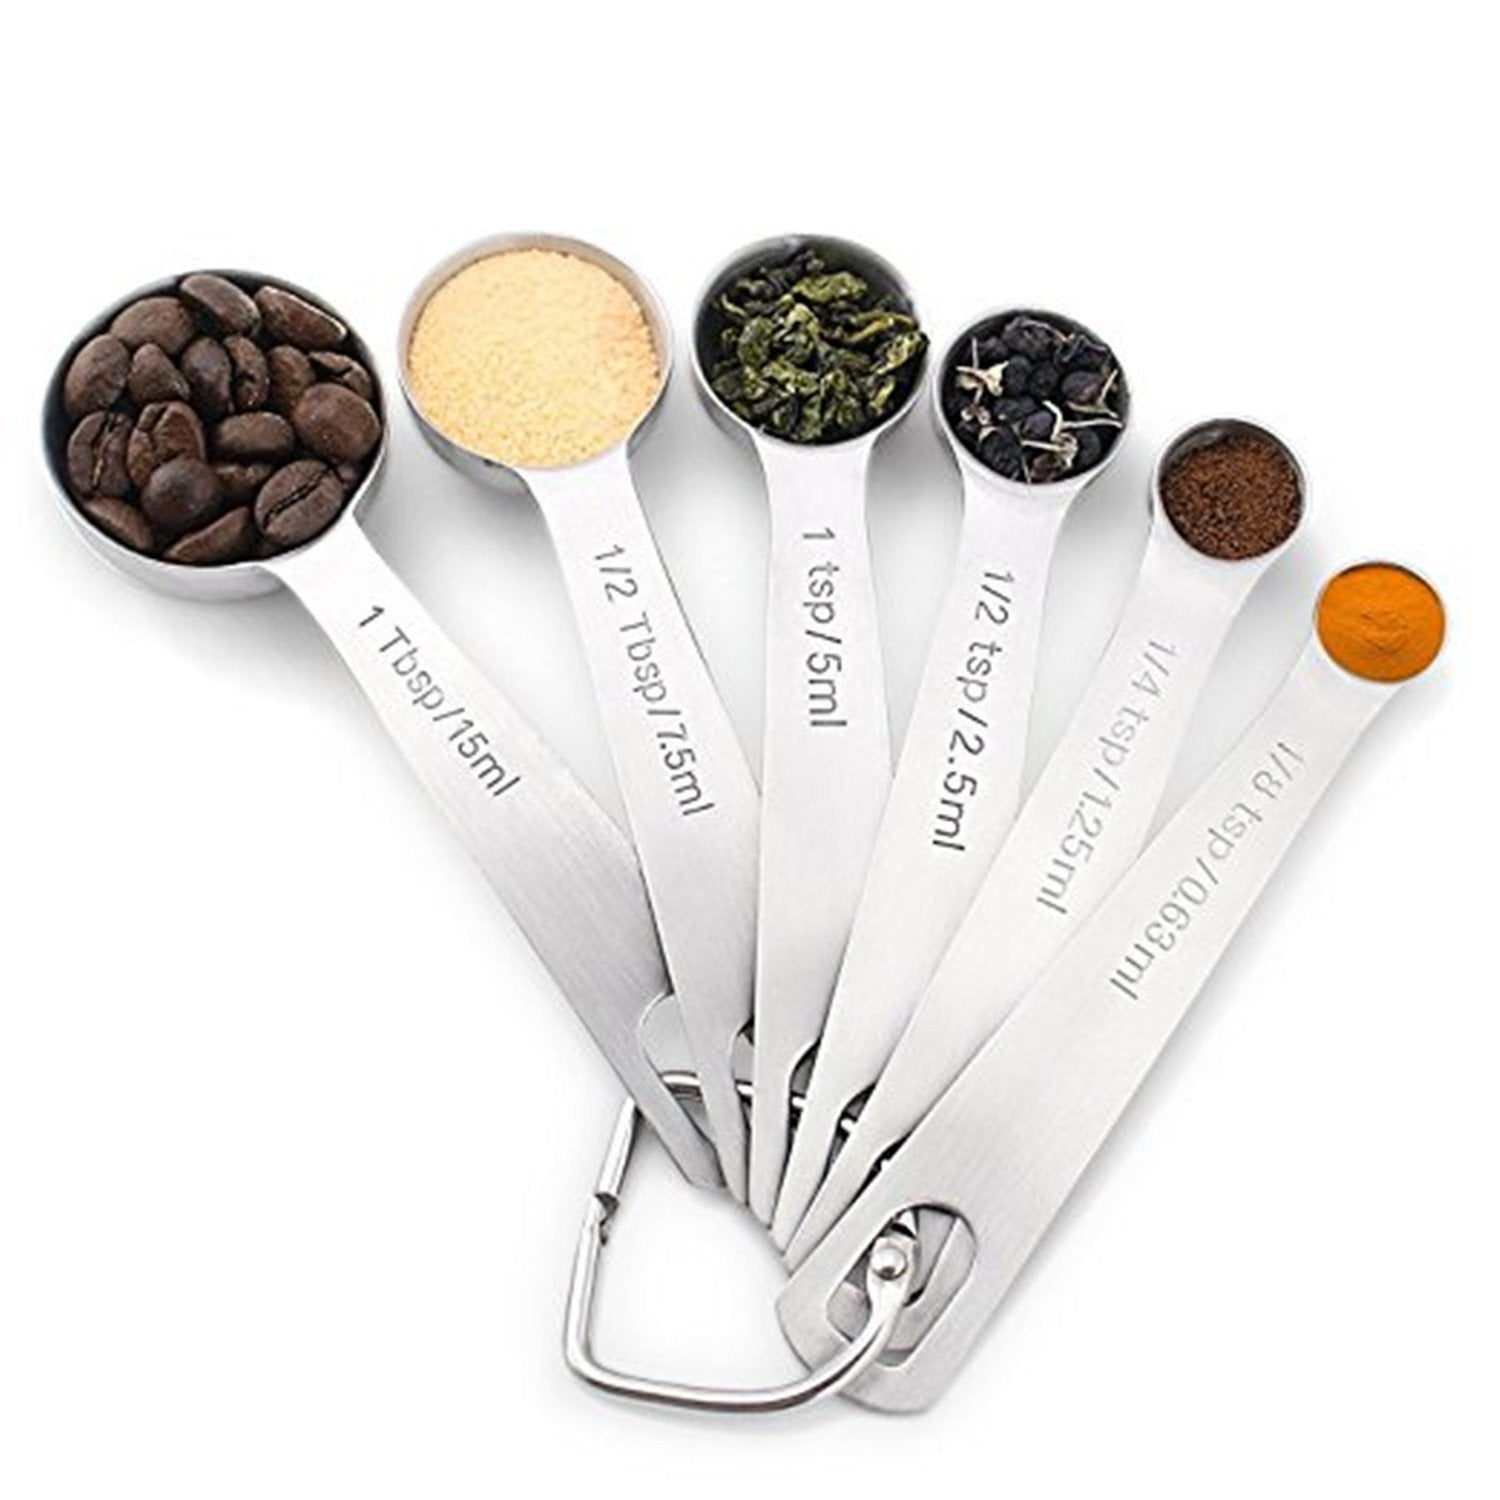 Stainless Steel Measuring Spoons ( Set Of 6 )